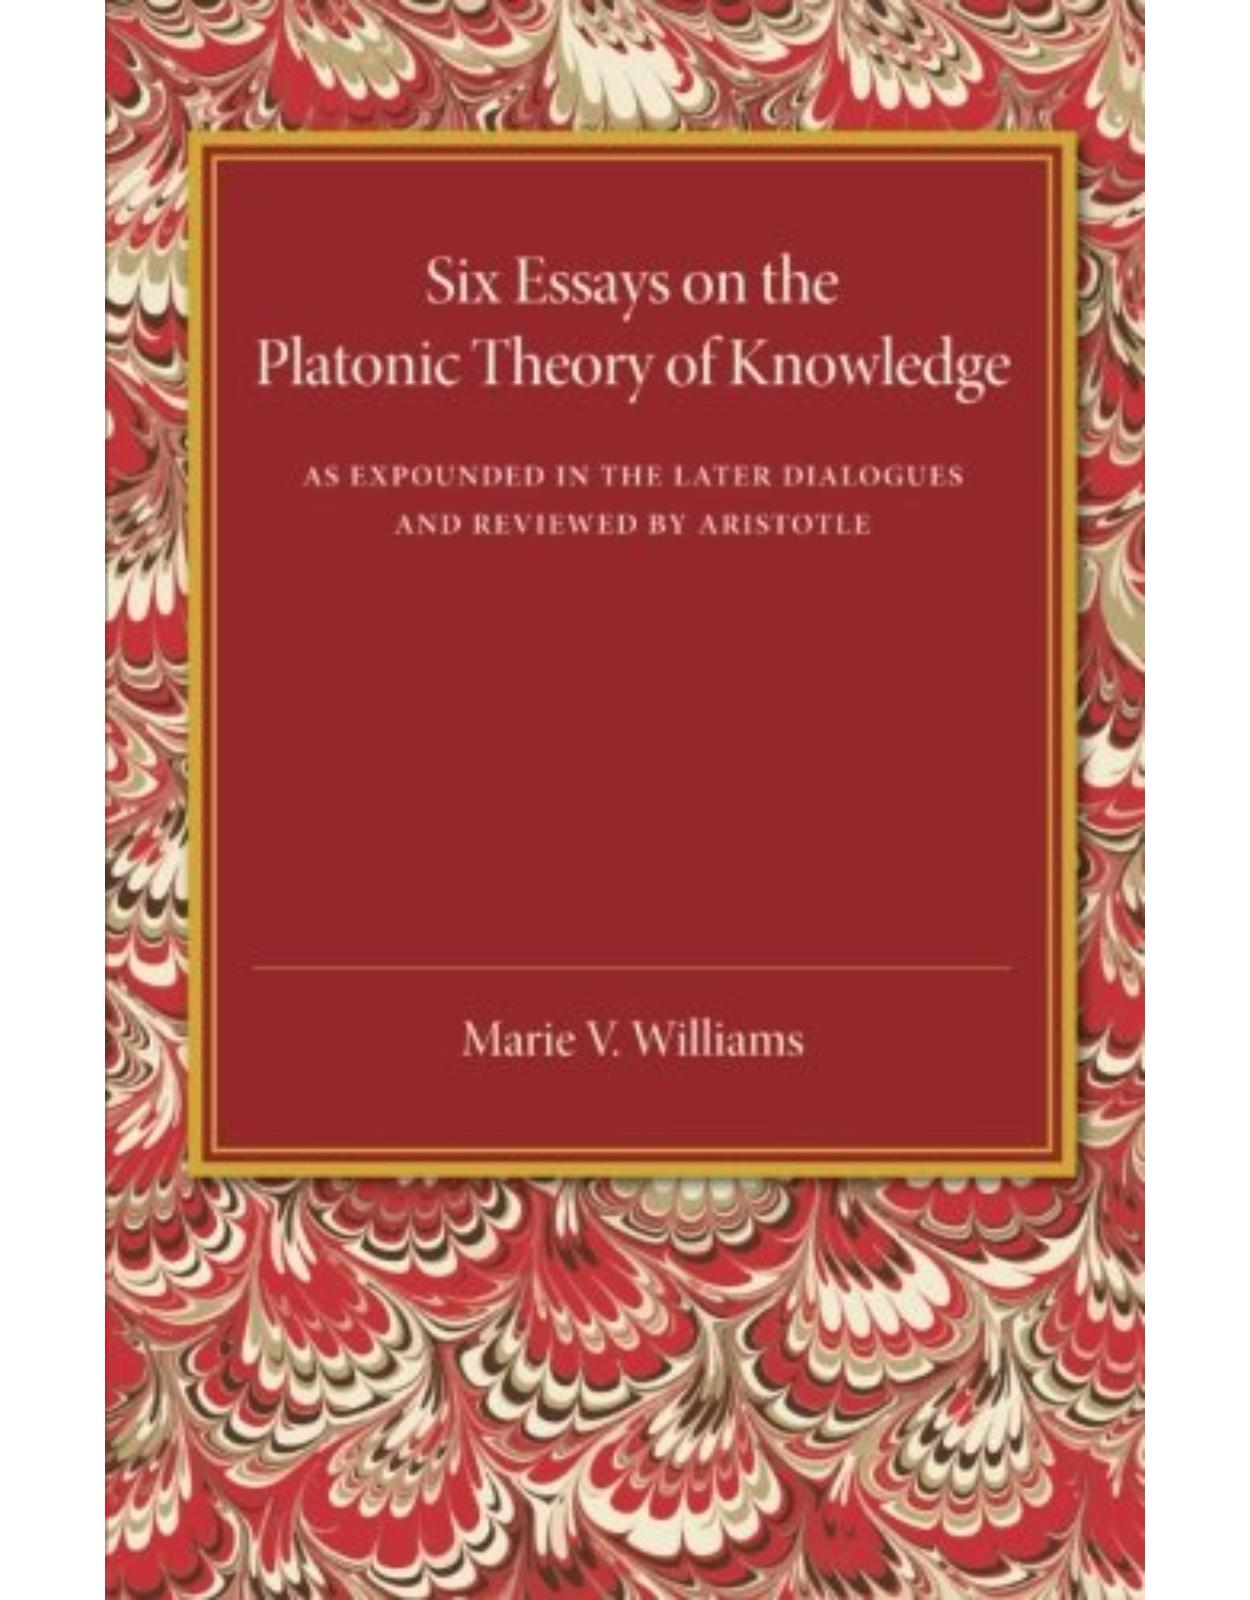 Six Essays on the Platonic Theory of Knowledge: As Expounded in the Later Dialogues and Reviewed by Aristotle